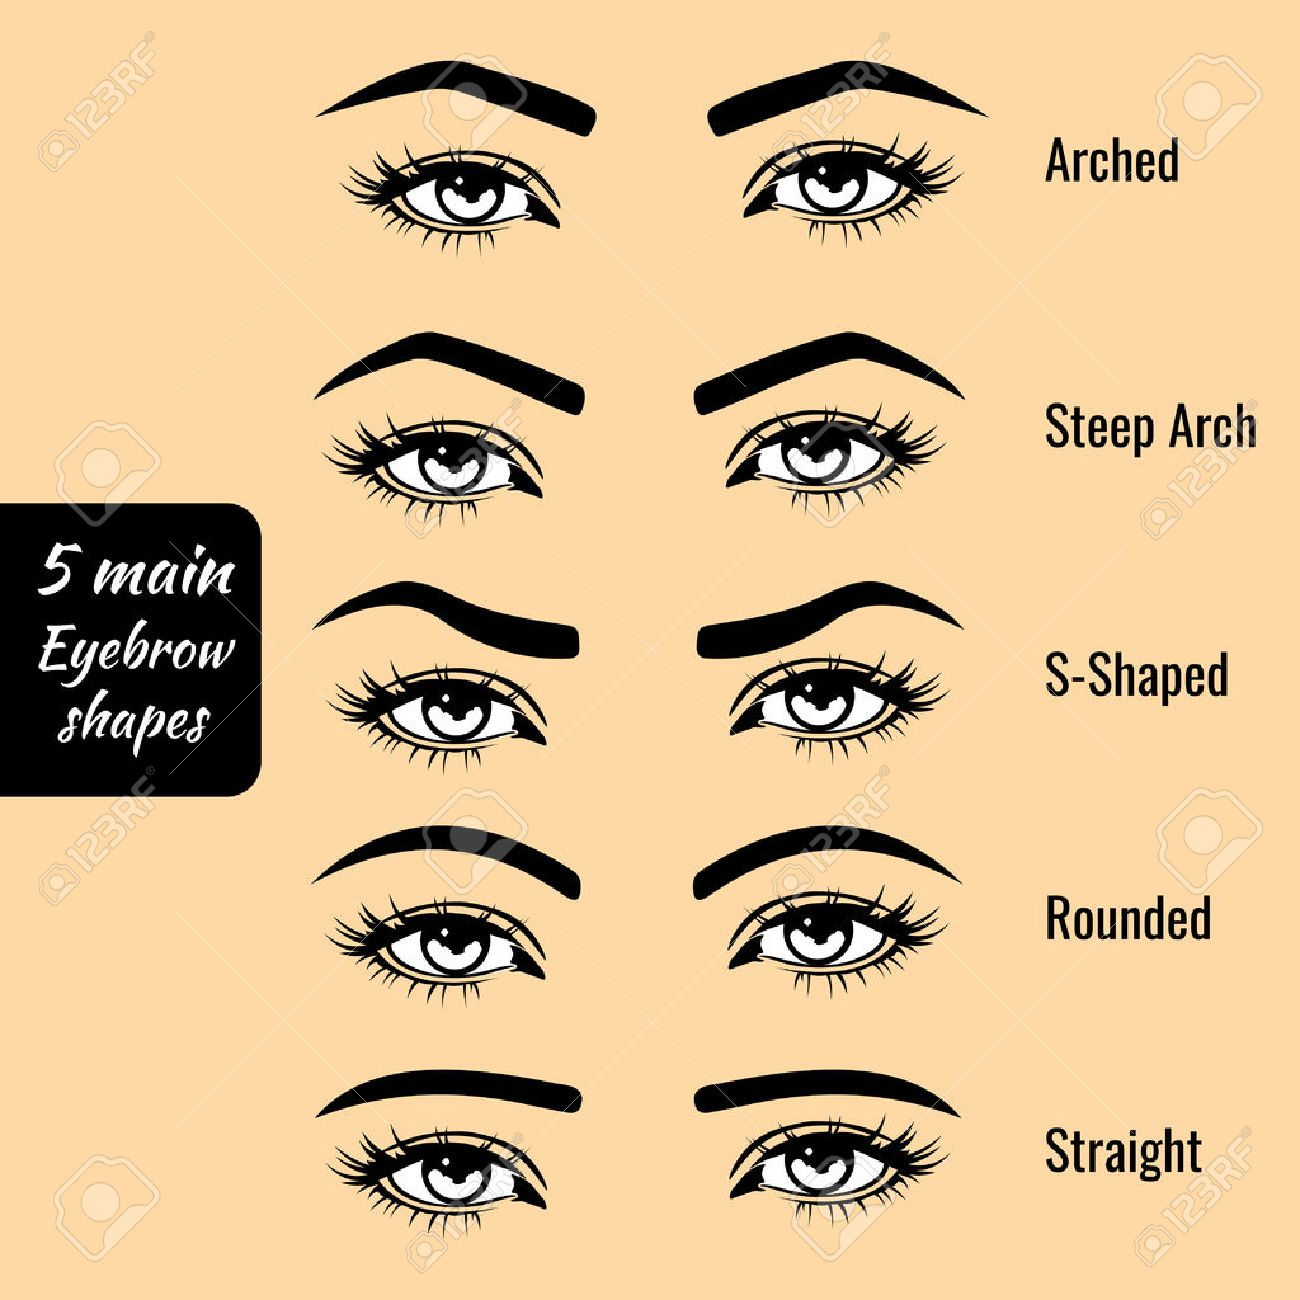 Best Eyebrow Salons In Mydubai Everything You Need To Know About